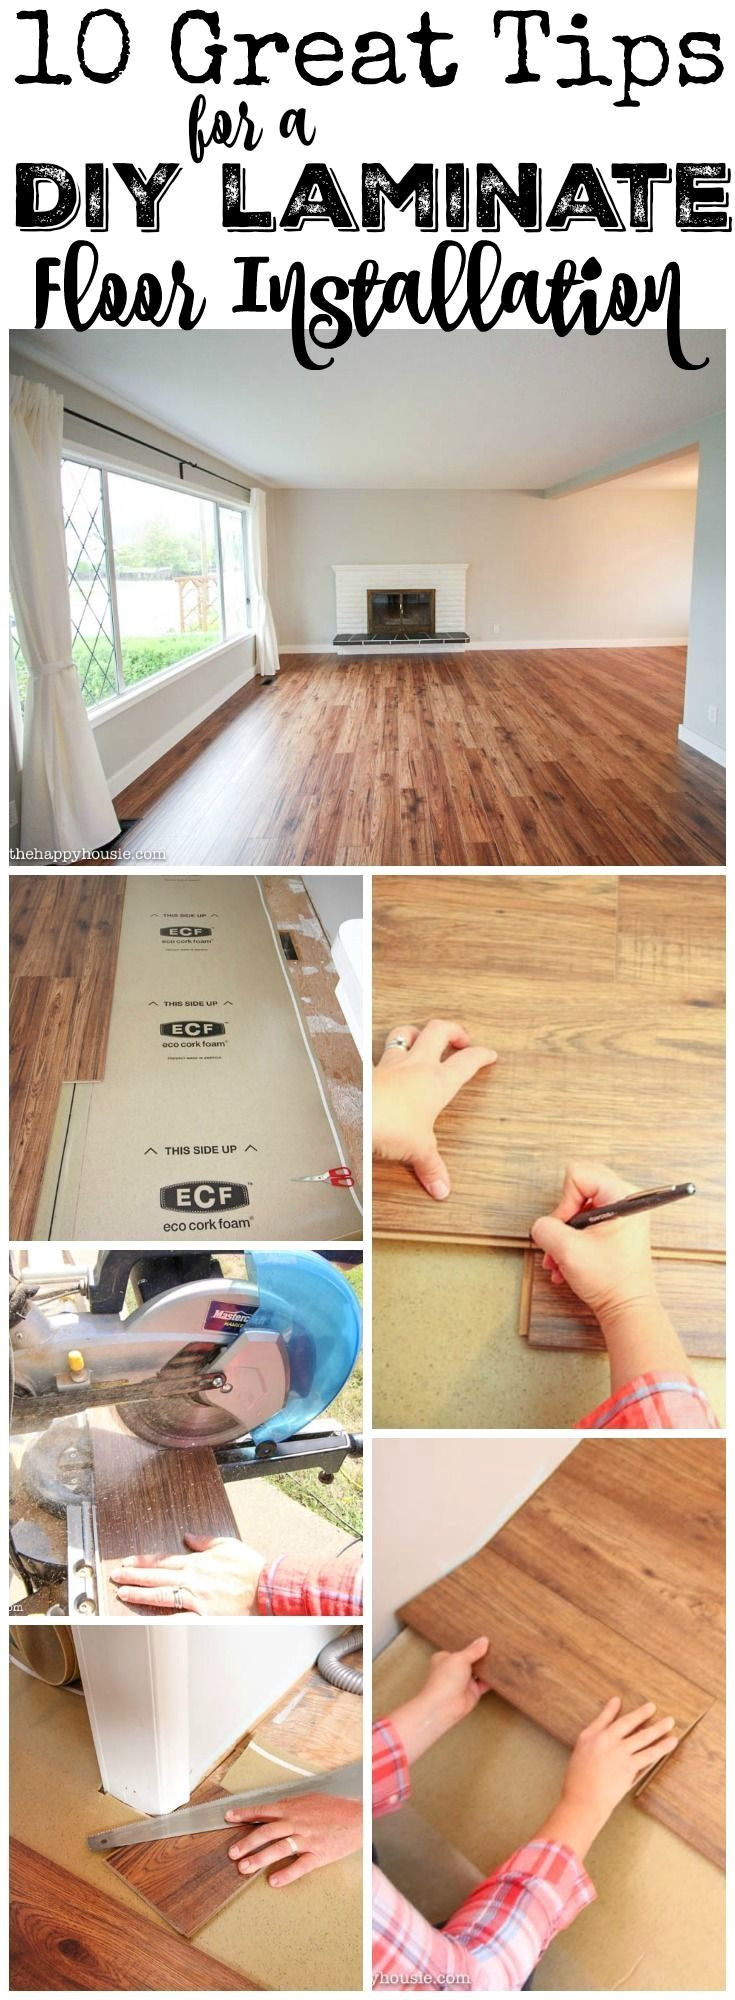 butterscotch oak hardwood flooring lowes of 21 best ideas images on pinterest flooring ideas wood flooring throughout 10 great tips for a diy laminate floor installation at thehappyhousie com floor